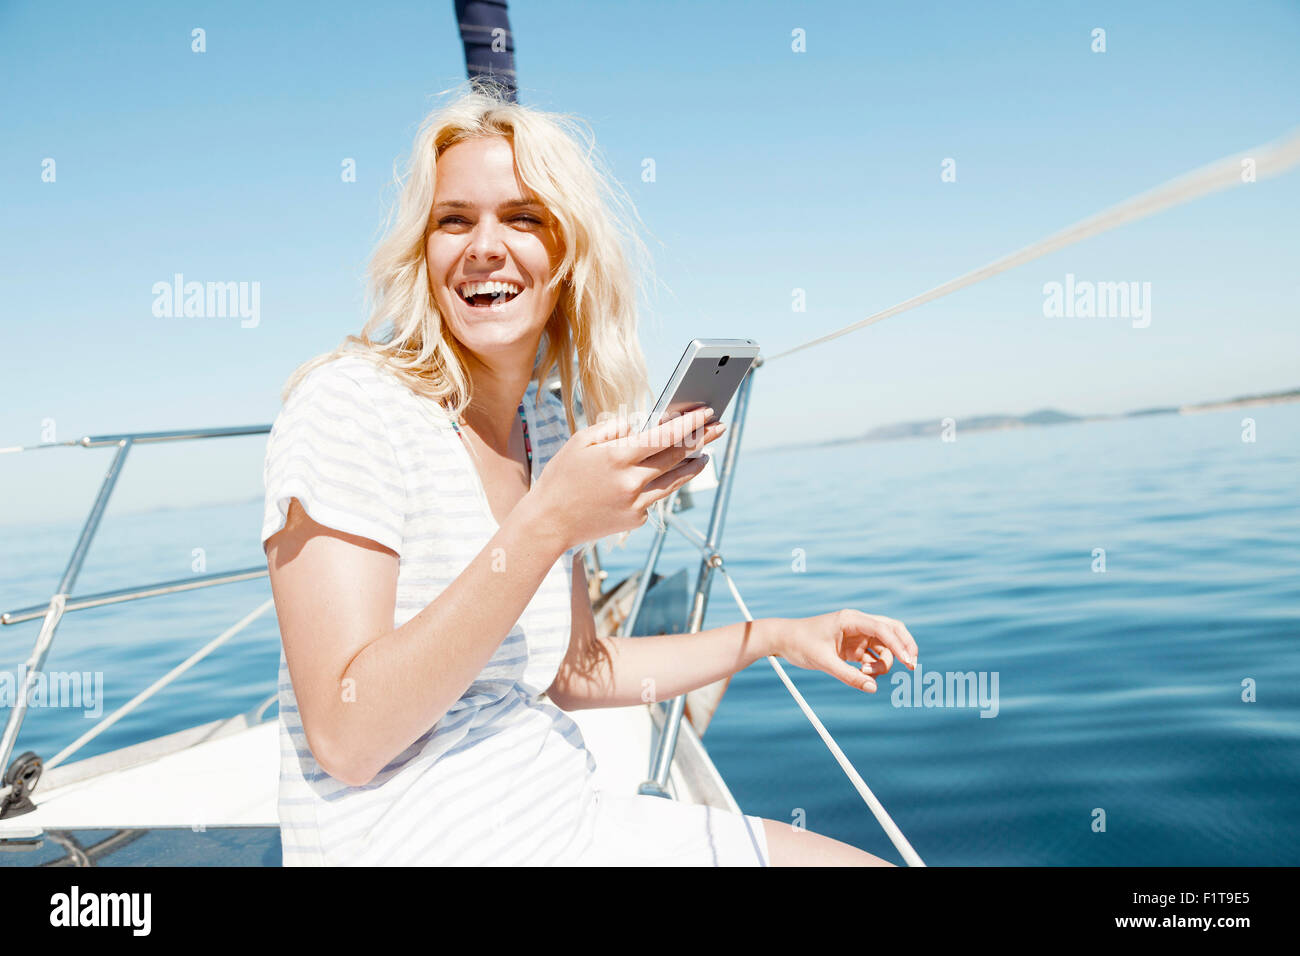 Young woman using smart phone on sailboat, Adriatic Sea - Stock Image